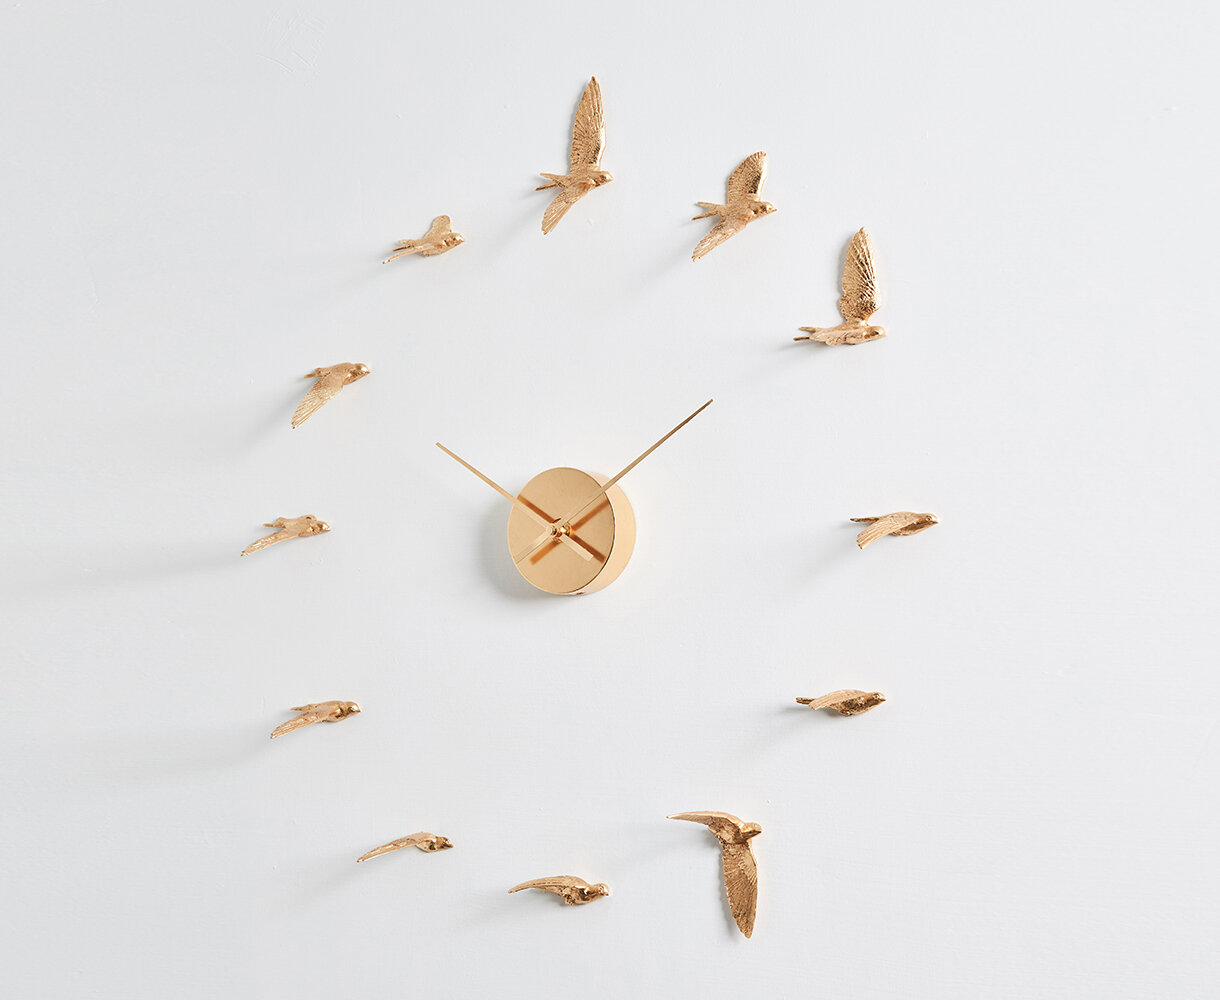 Gold Migrant Bird Clock